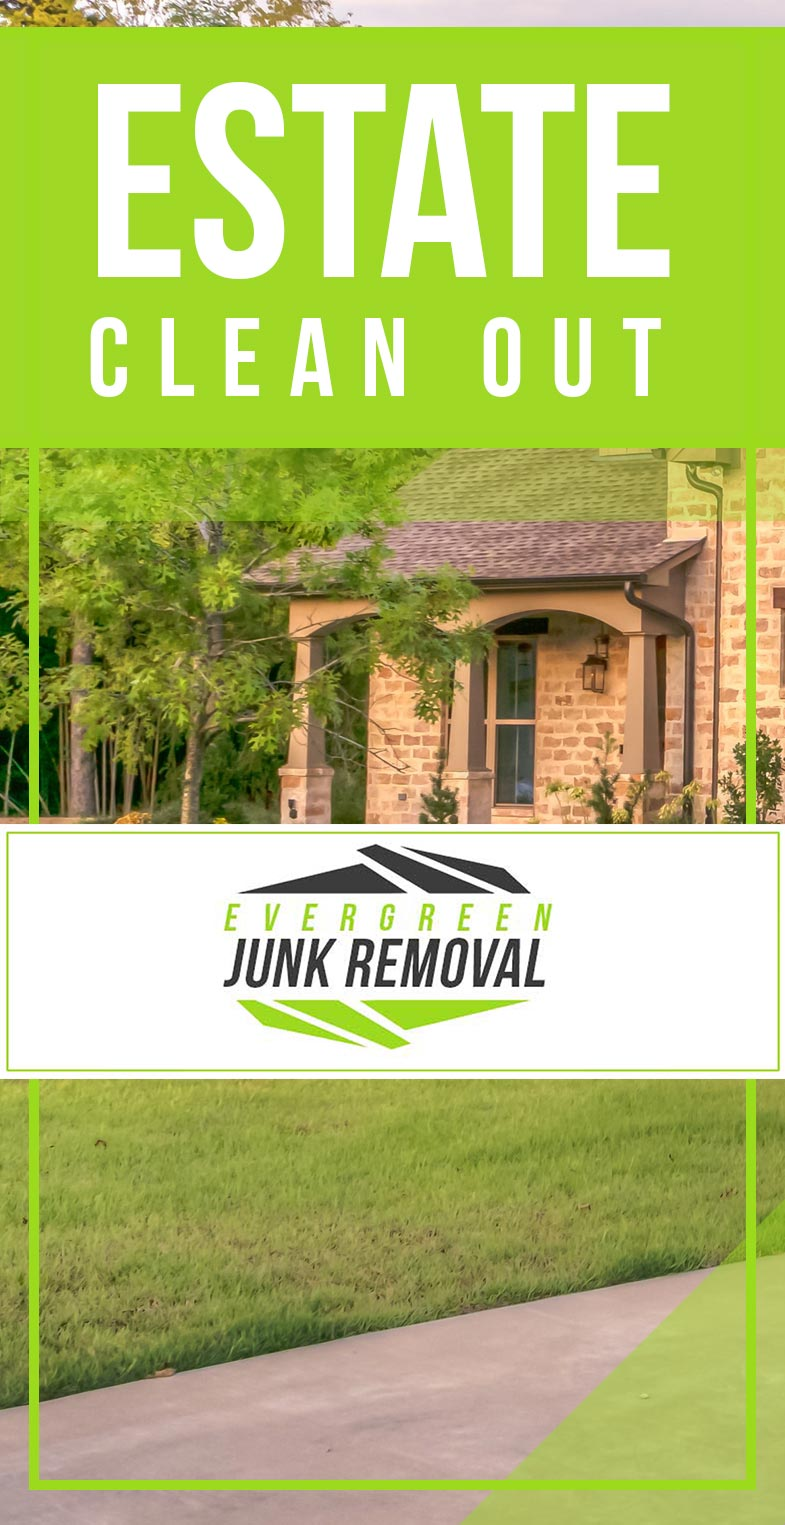 Junk Removal Juno Beach Estate Clean Out